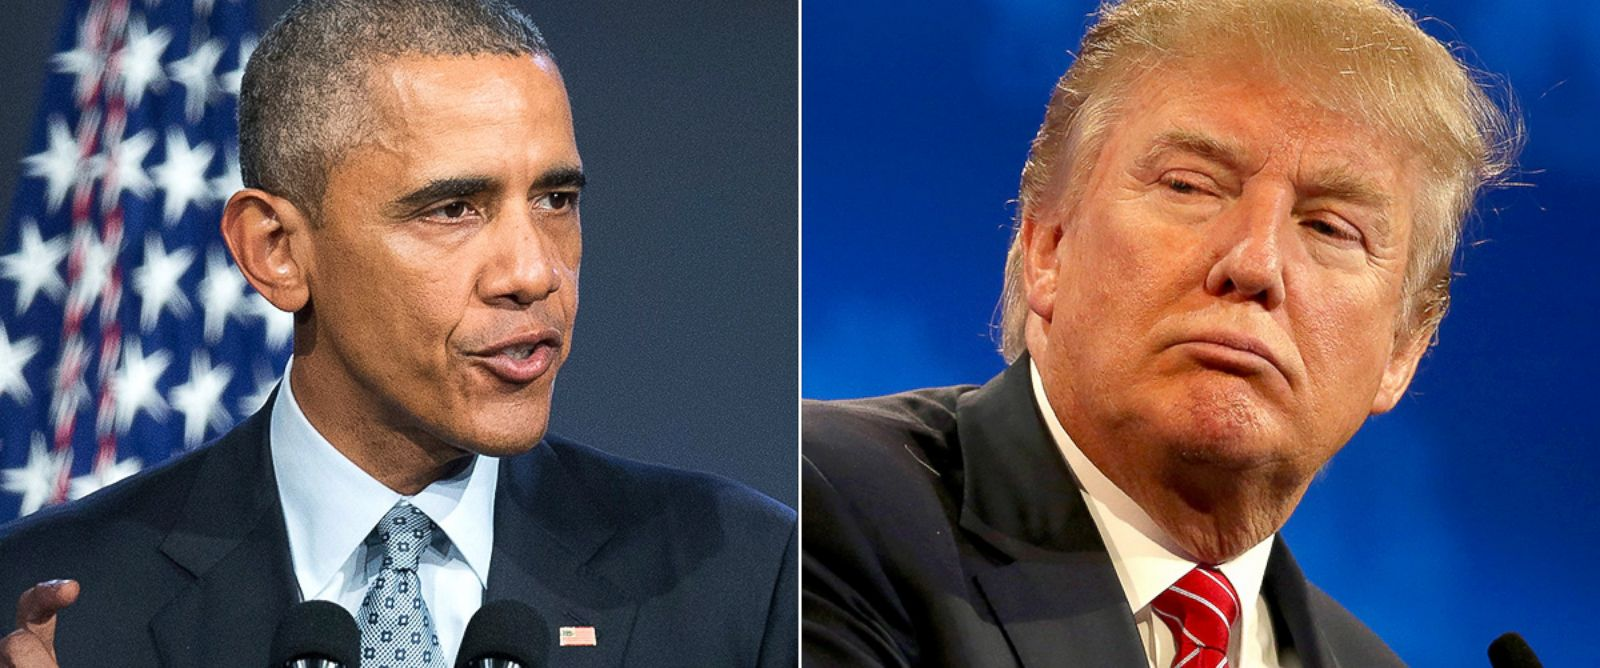 PHOTO: President Obama holds a press conference in Chicago on Oct. 27, 2015 and Donald Trump partakes in the third GOP debate, Oct. 28, 2015, in Boulder, Colo.